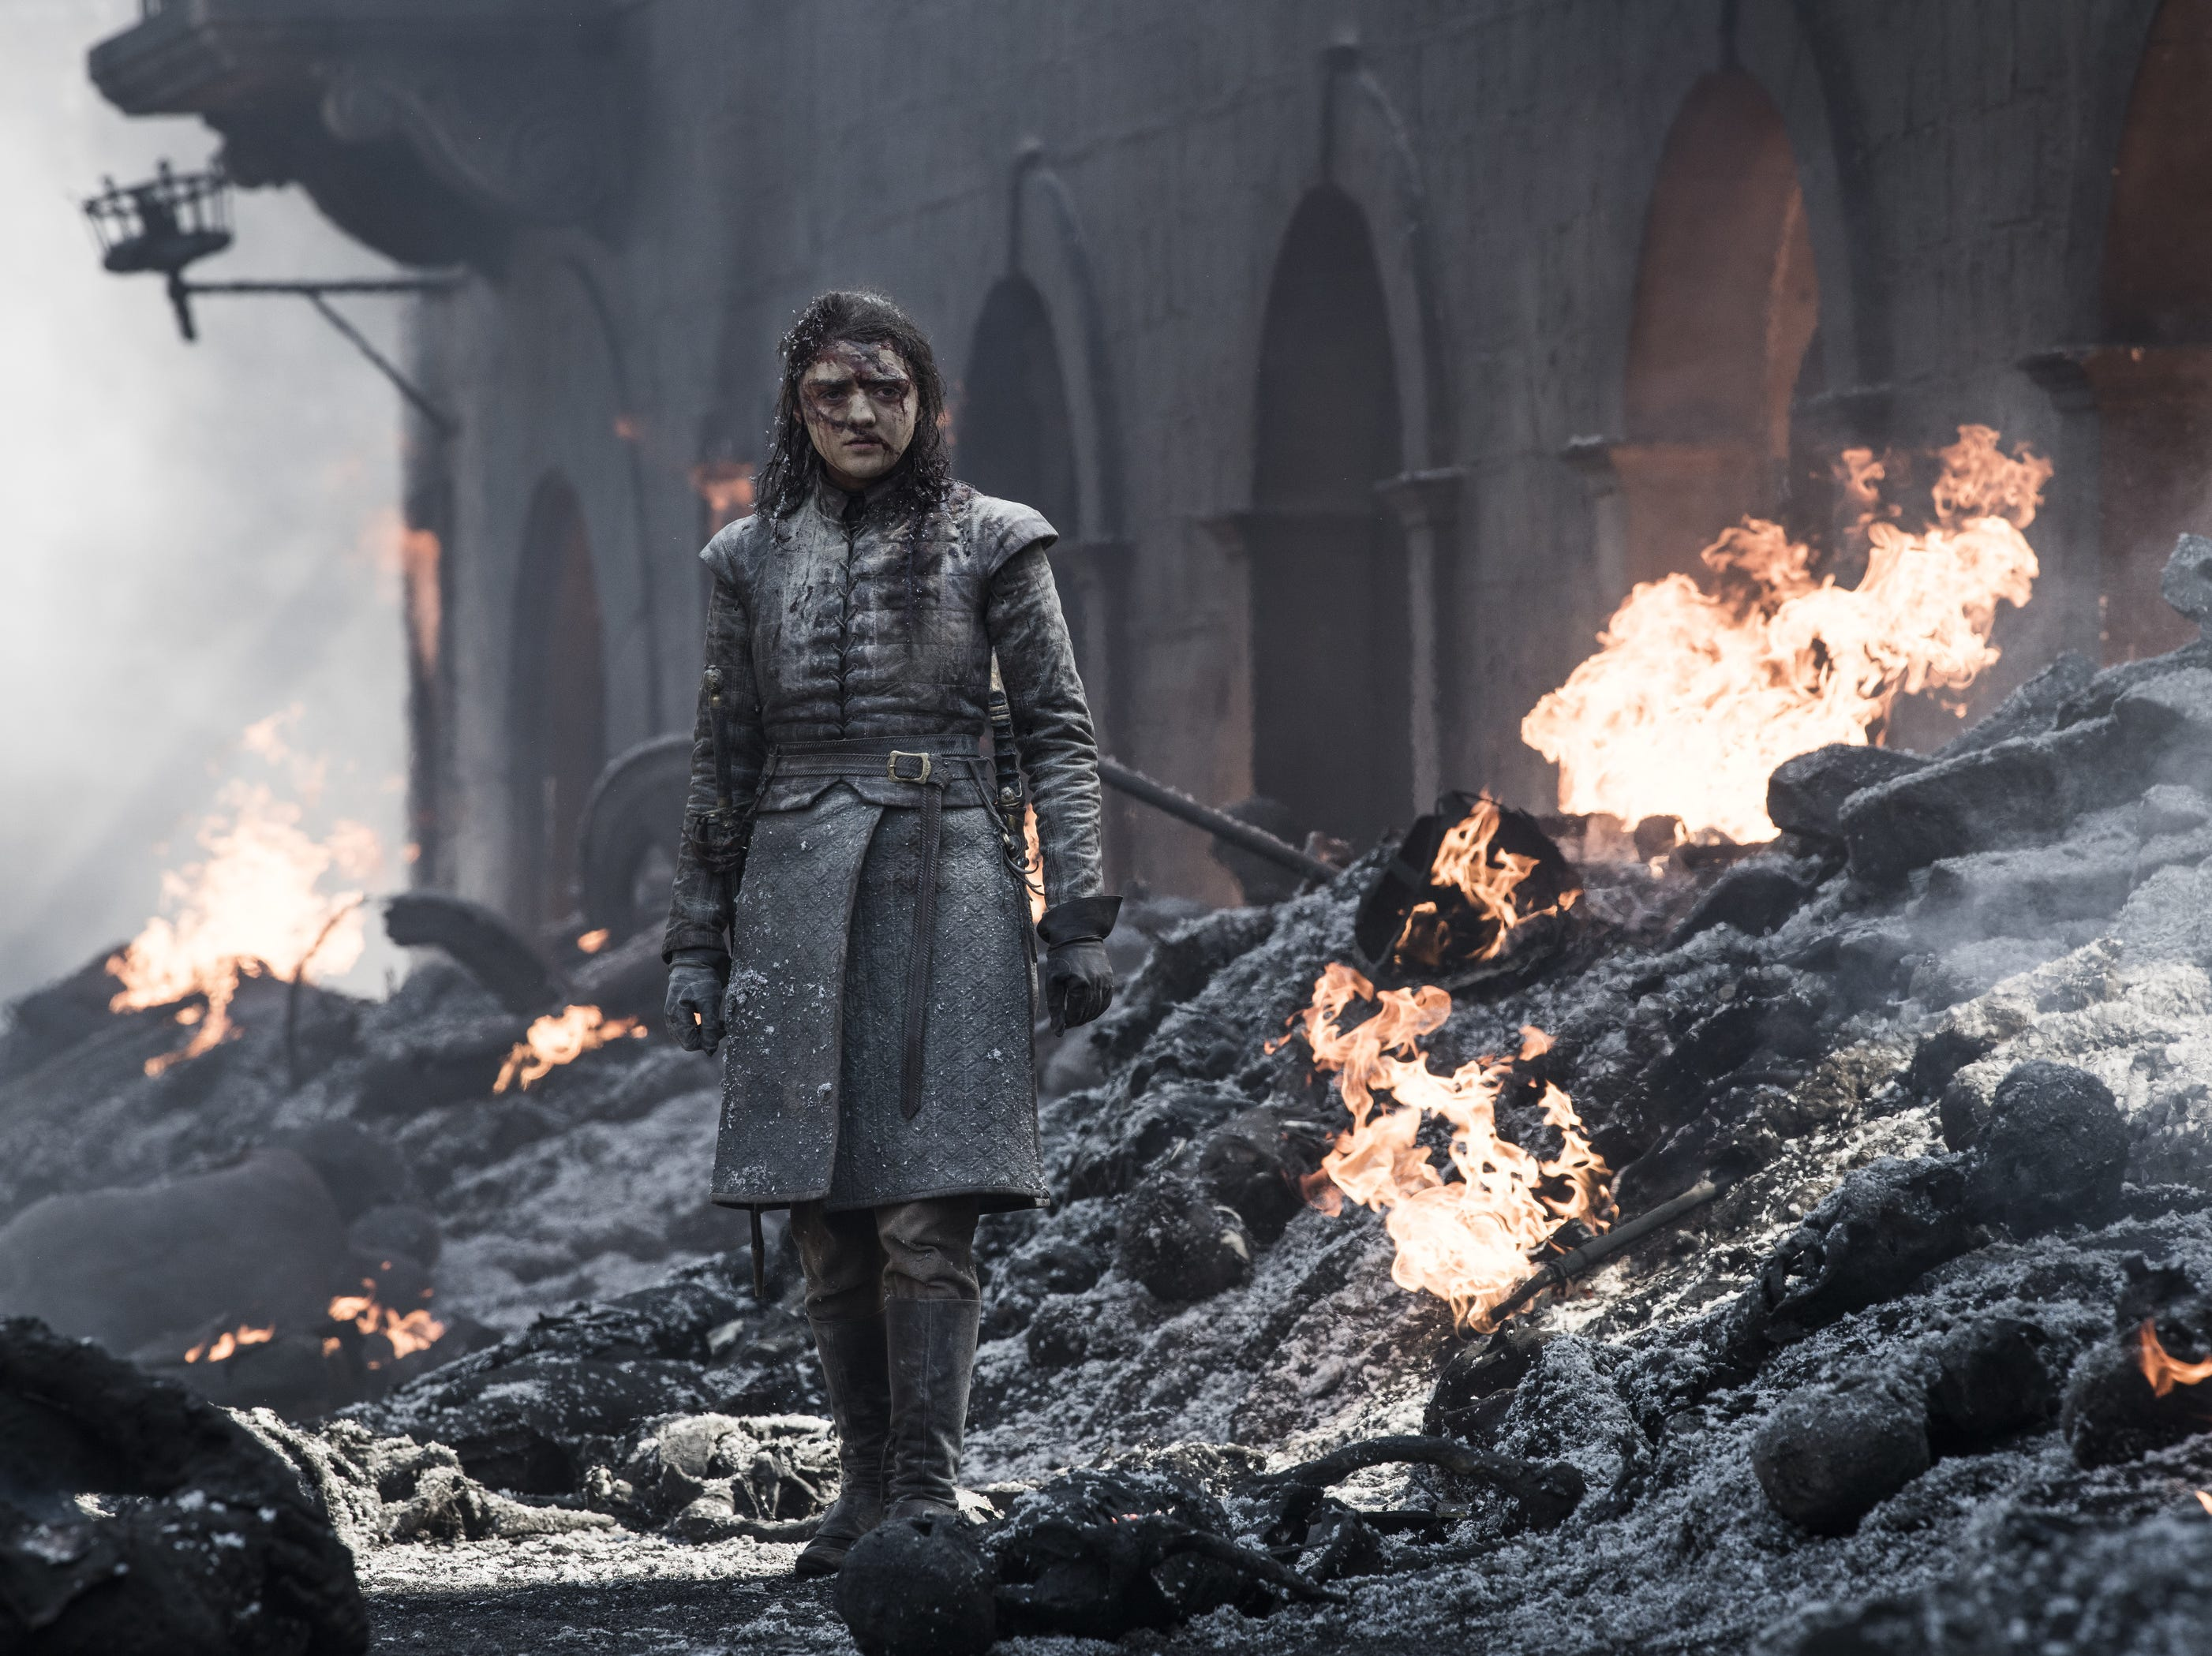 Arya Stark (Maisie Williams) takes in the King's Landing carnage.